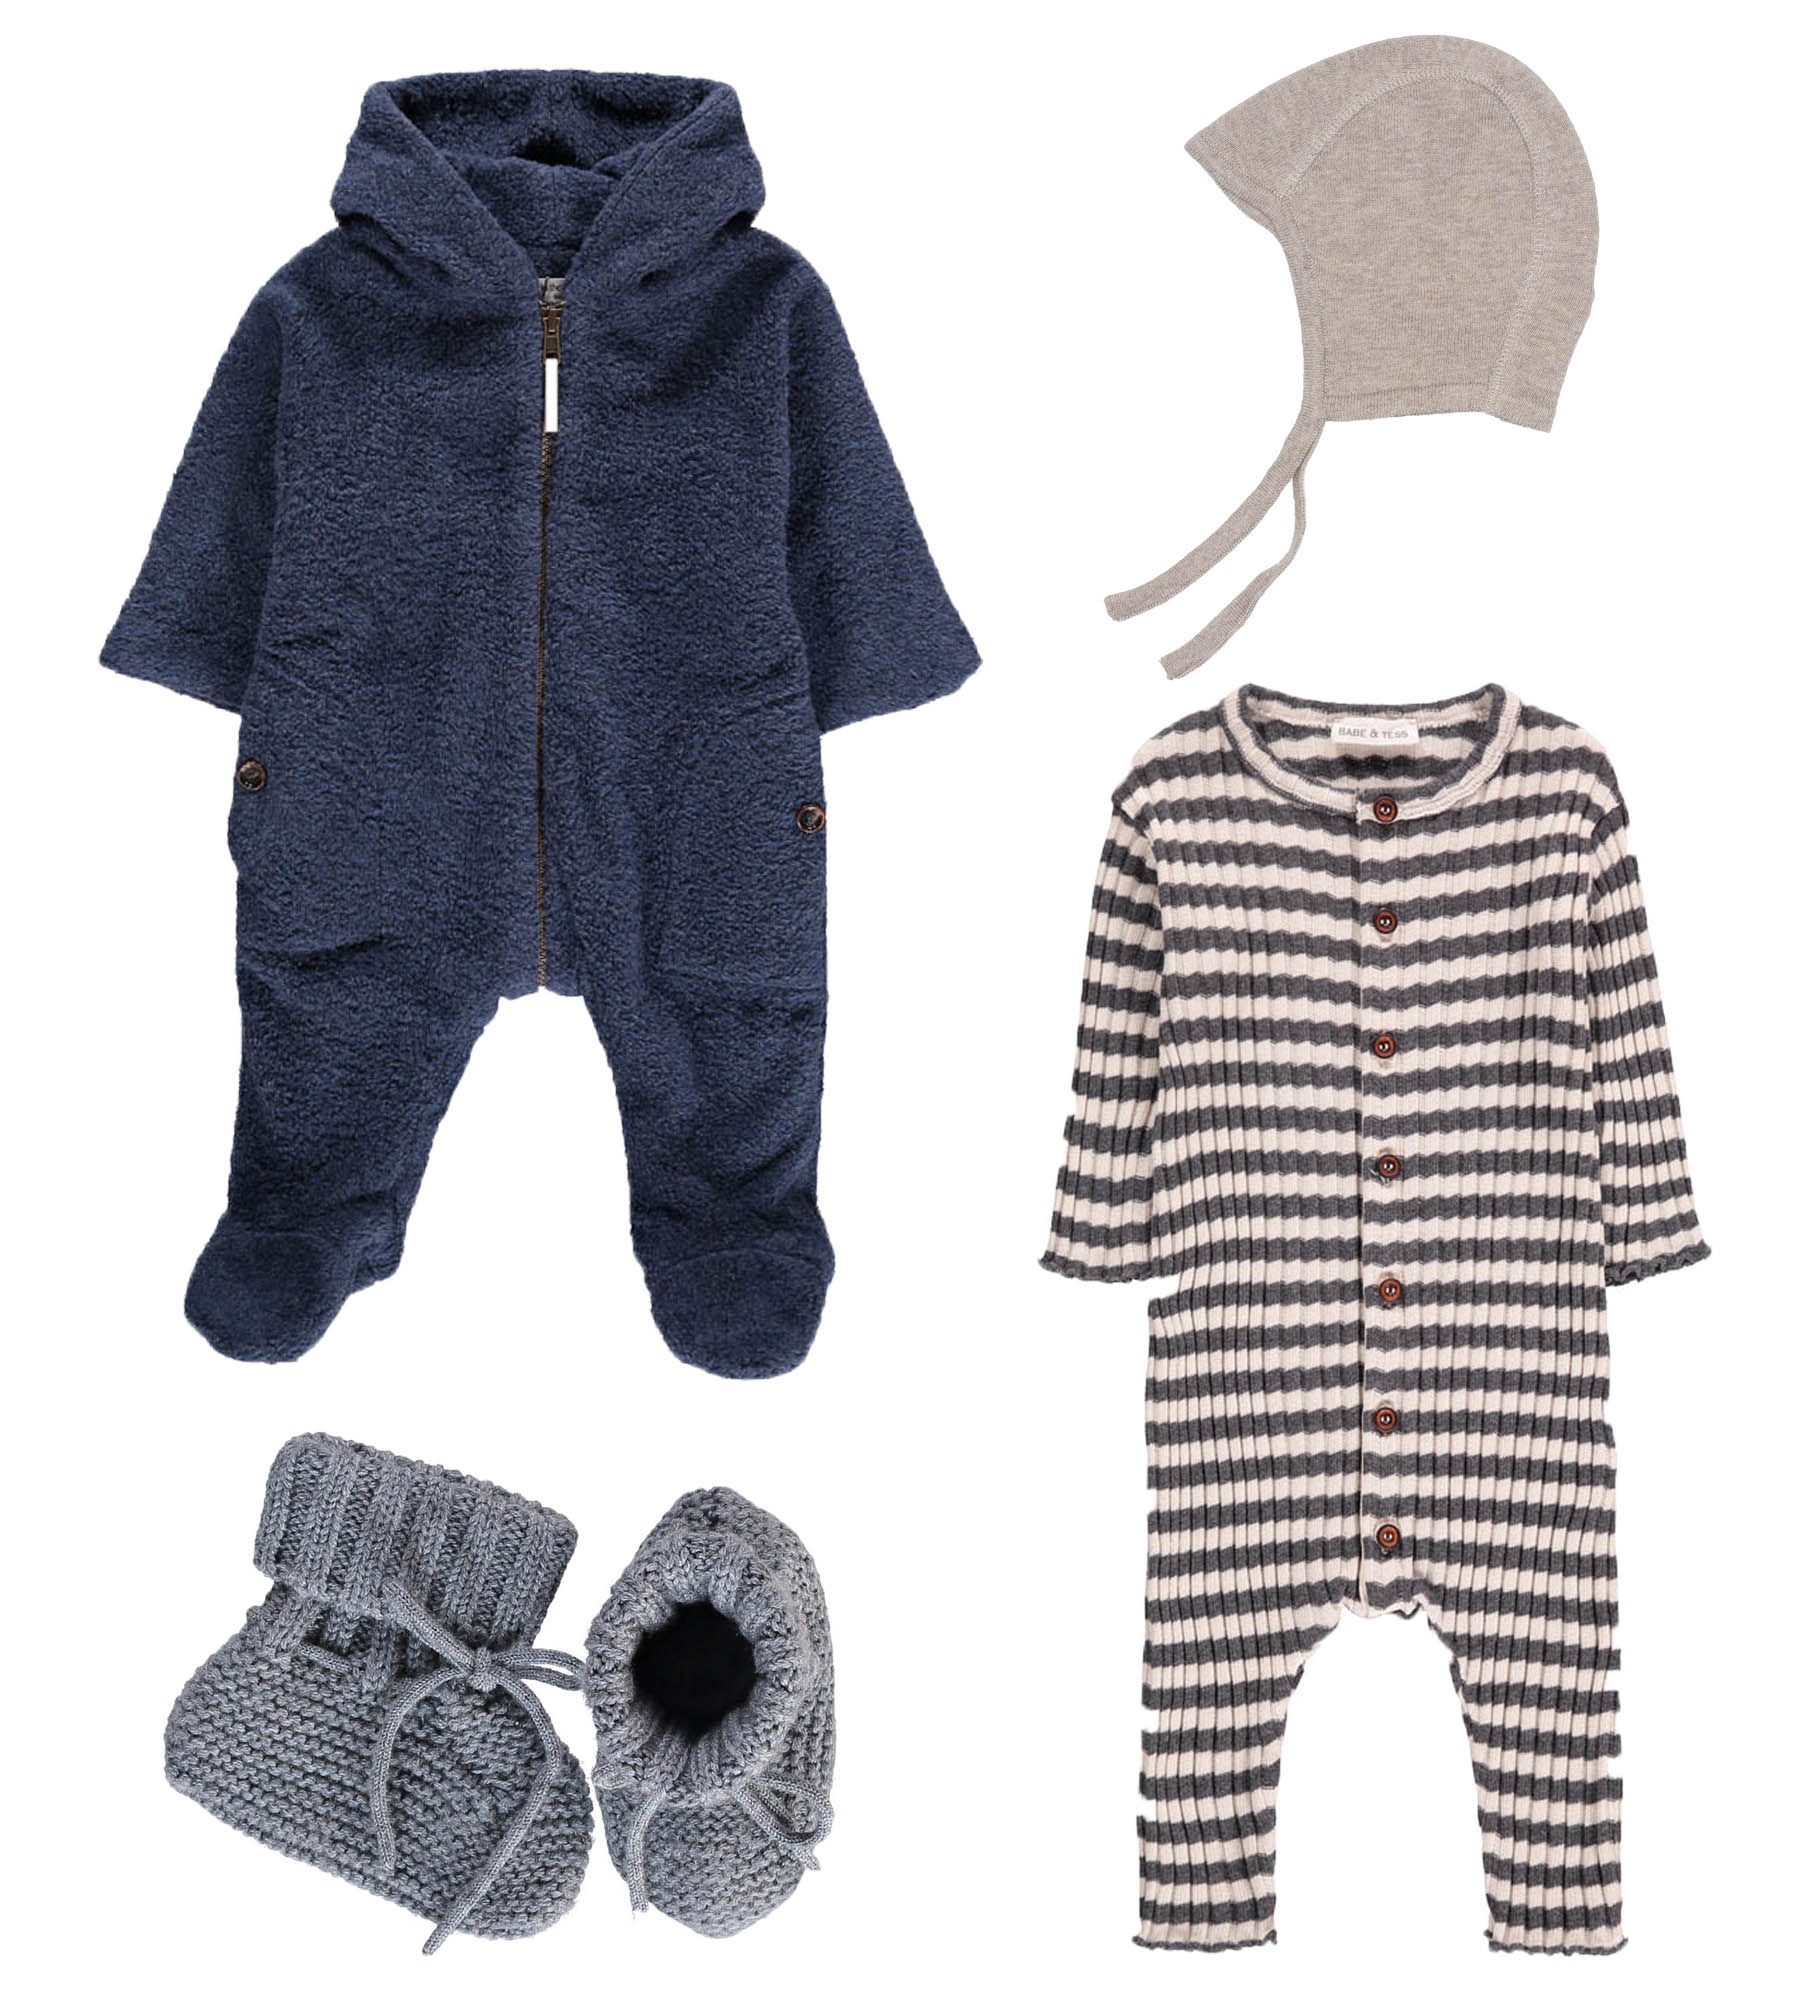 Fleece// 1+ IN THE FAMILY  Wool slippers// FUB  Baby hat// SERENDIPITY  Jumpsuit// BABE & TESS